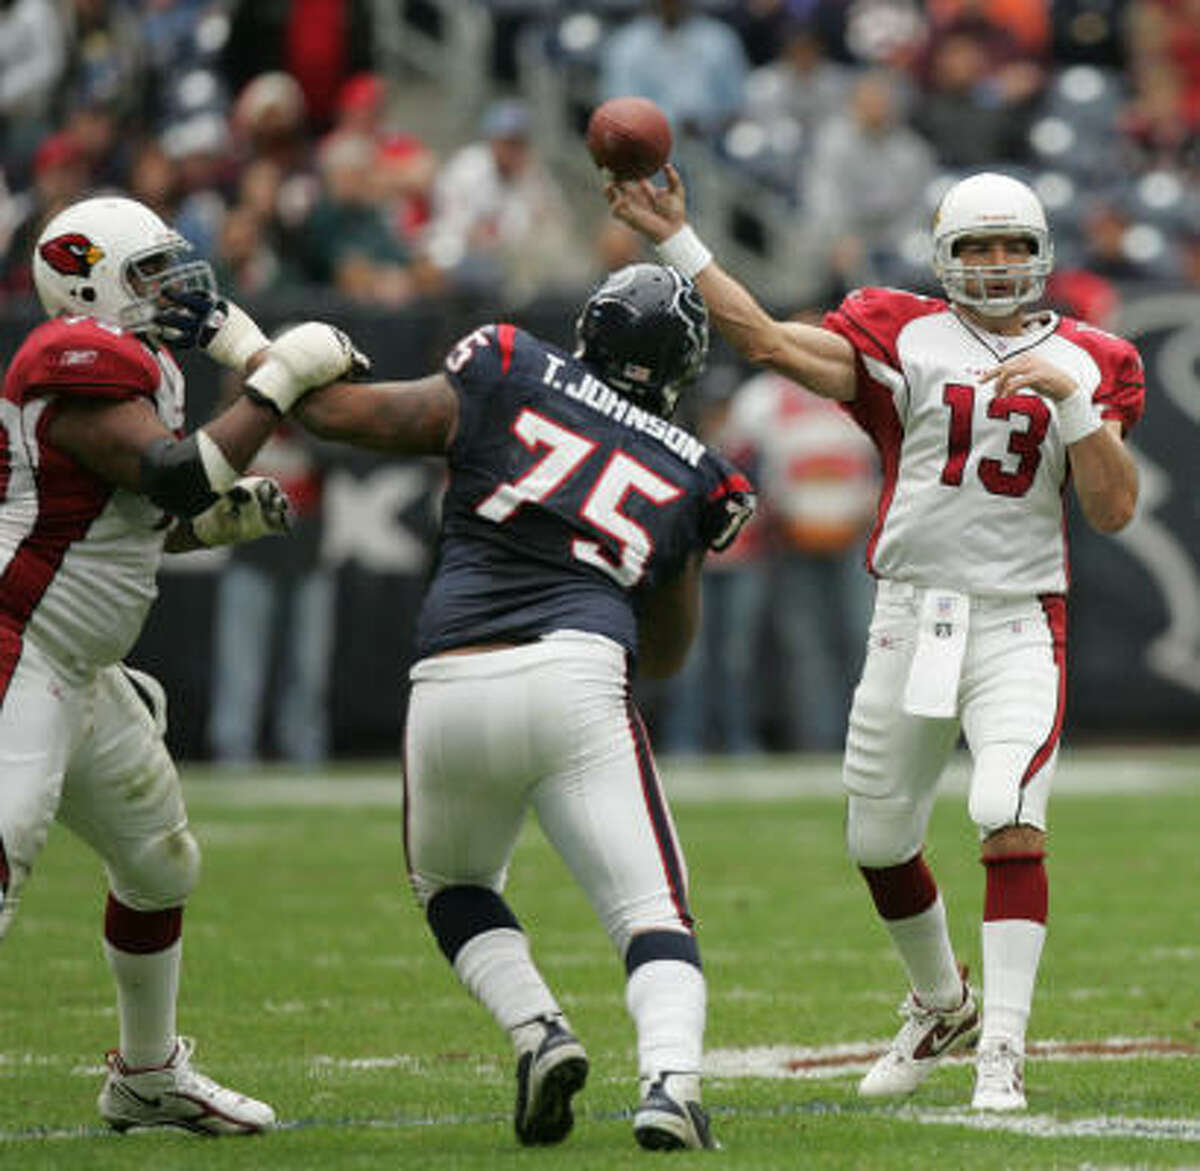 2005 : Kurt Warner played and started in 10 games. The Cardinals only won twice in games in which he started.